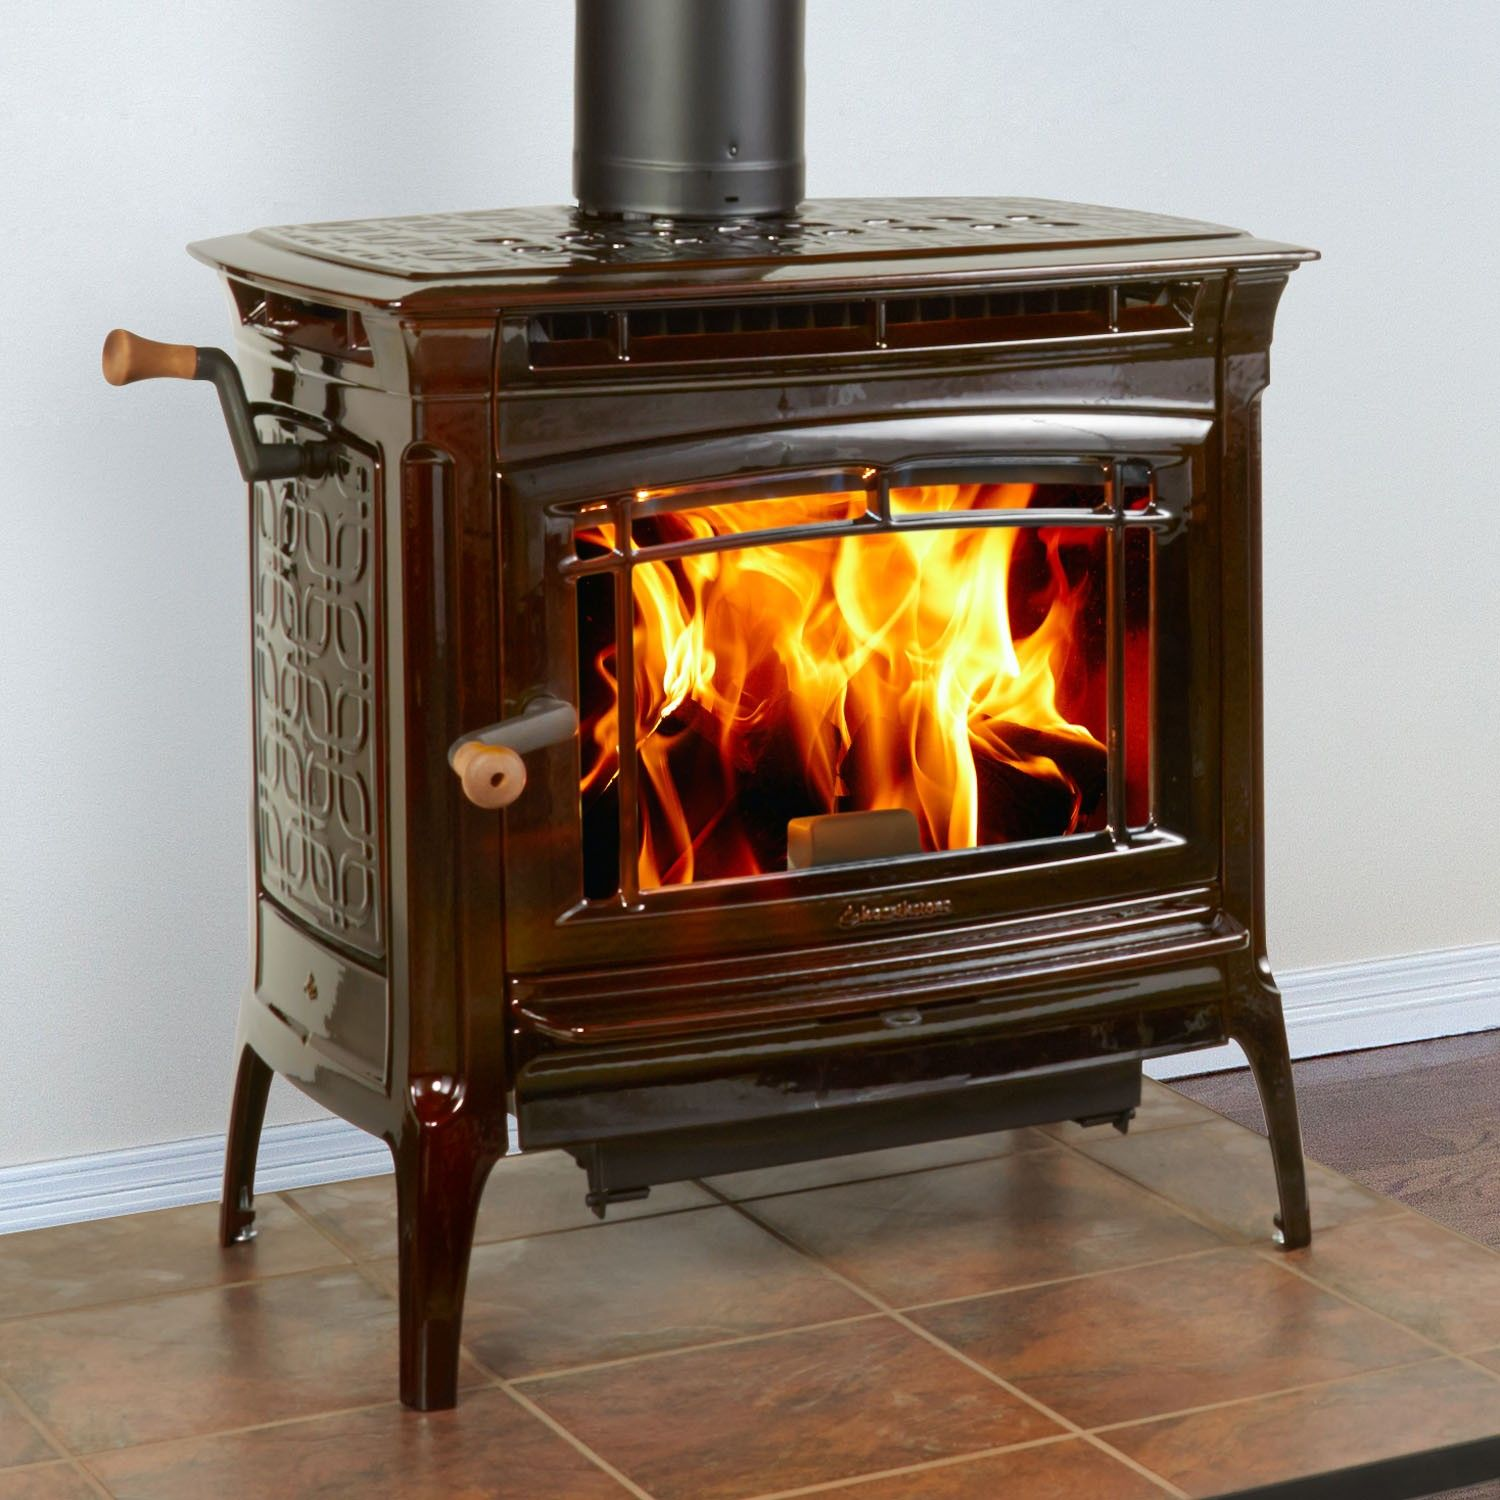 Hearthstone Manchester 8360 Wood Heats Up To 2 400 Sq Ft Firebox. Enameled  Steel Bathtub - Enameled Wood Stove - Interior Home Interior & Decorating